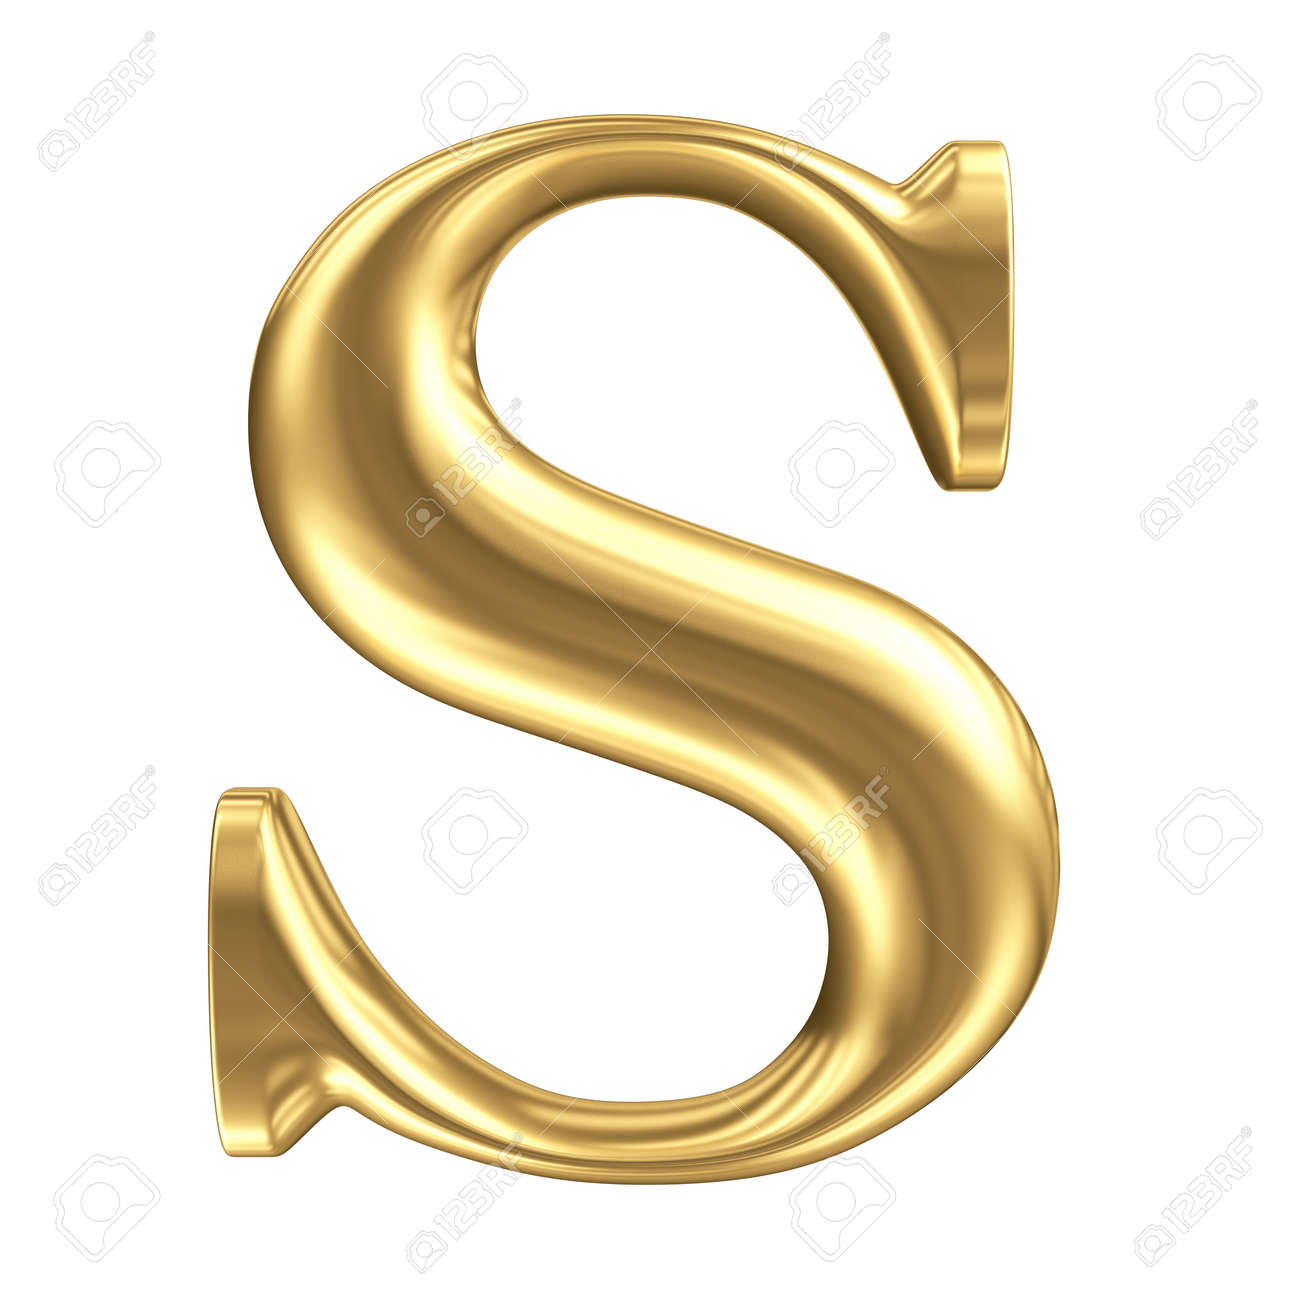 Golden Matt Letter S Jewellery Font Collection